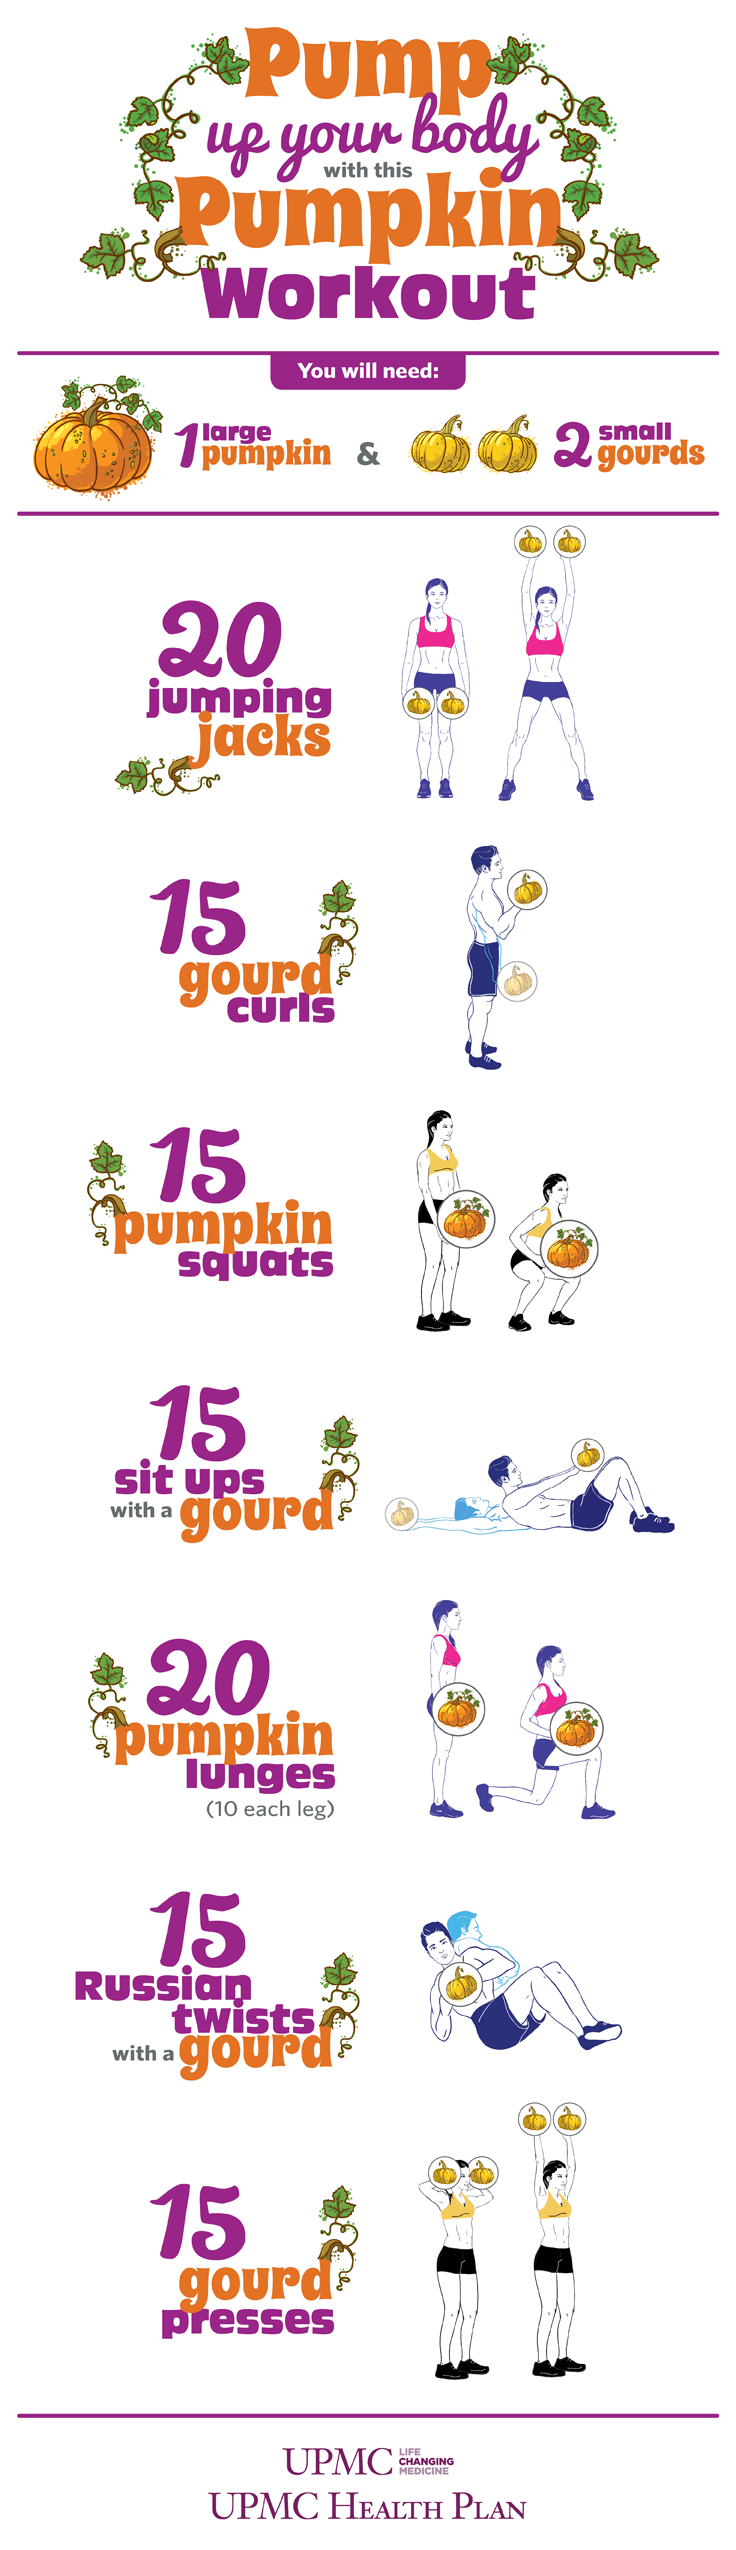 Pump up your body with this pumpkin workout!